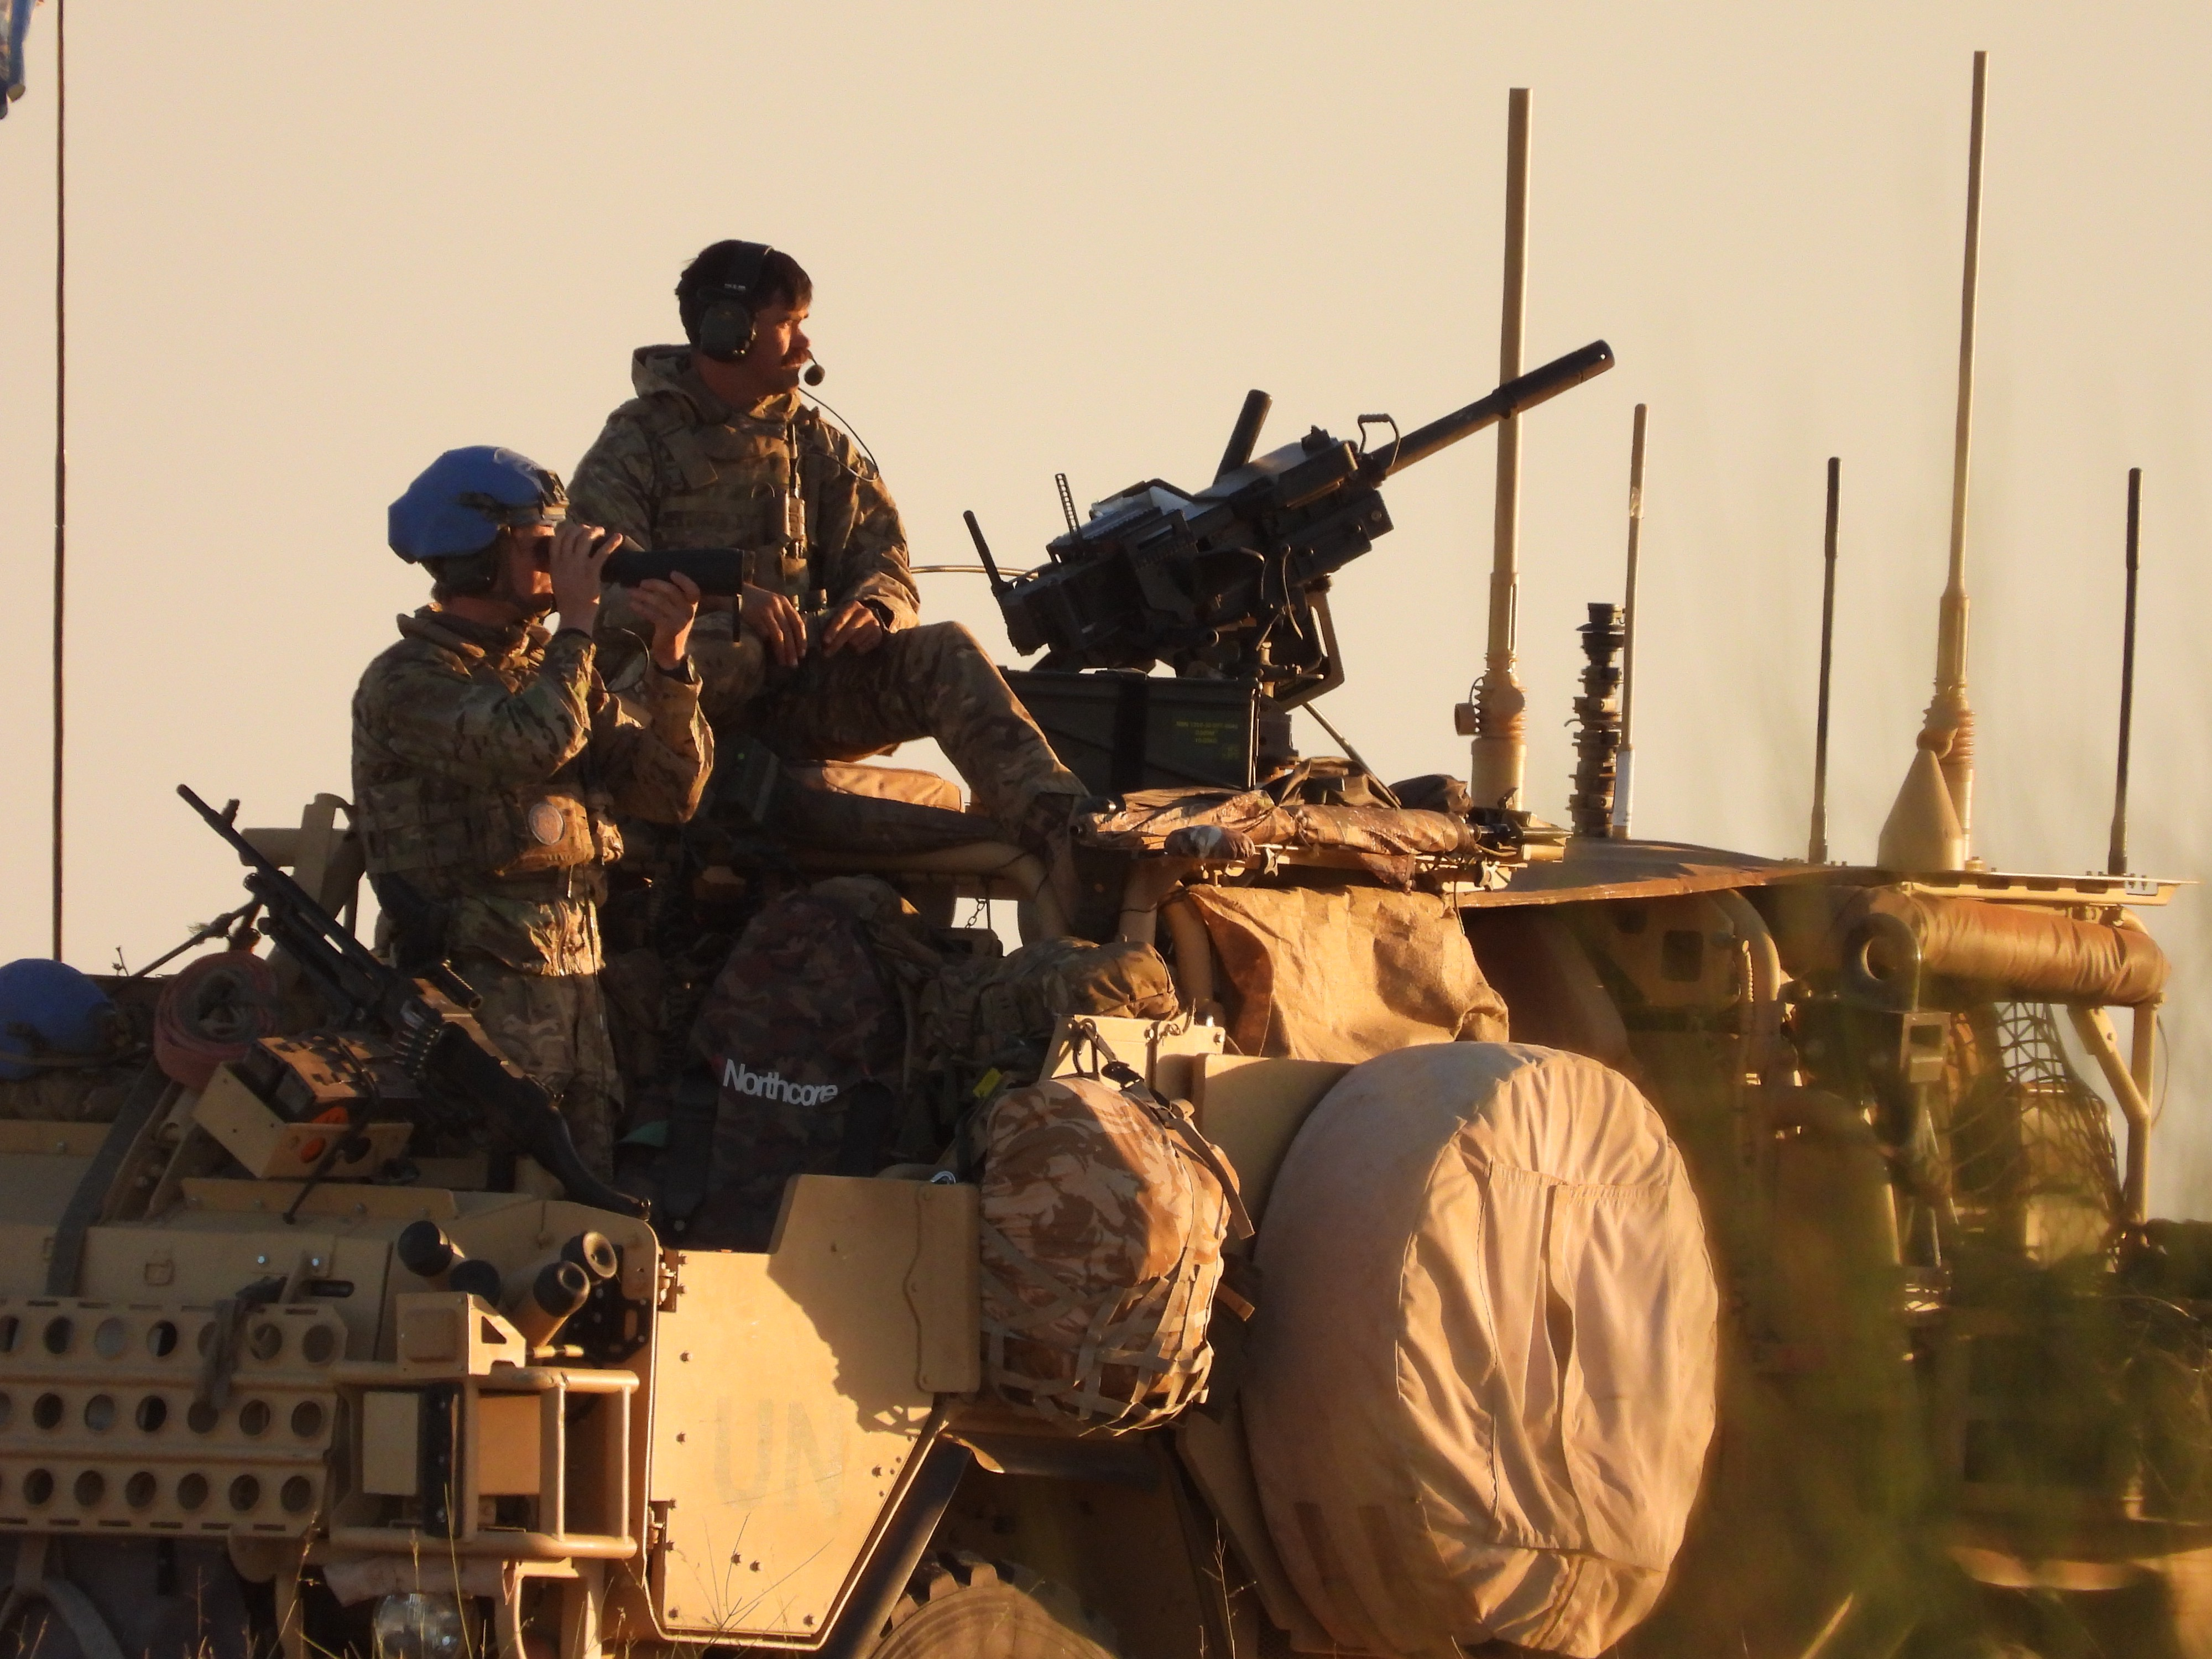 An image taken from Operation NEWCOMBE, the UN Peacekeeping Mission in Mali.